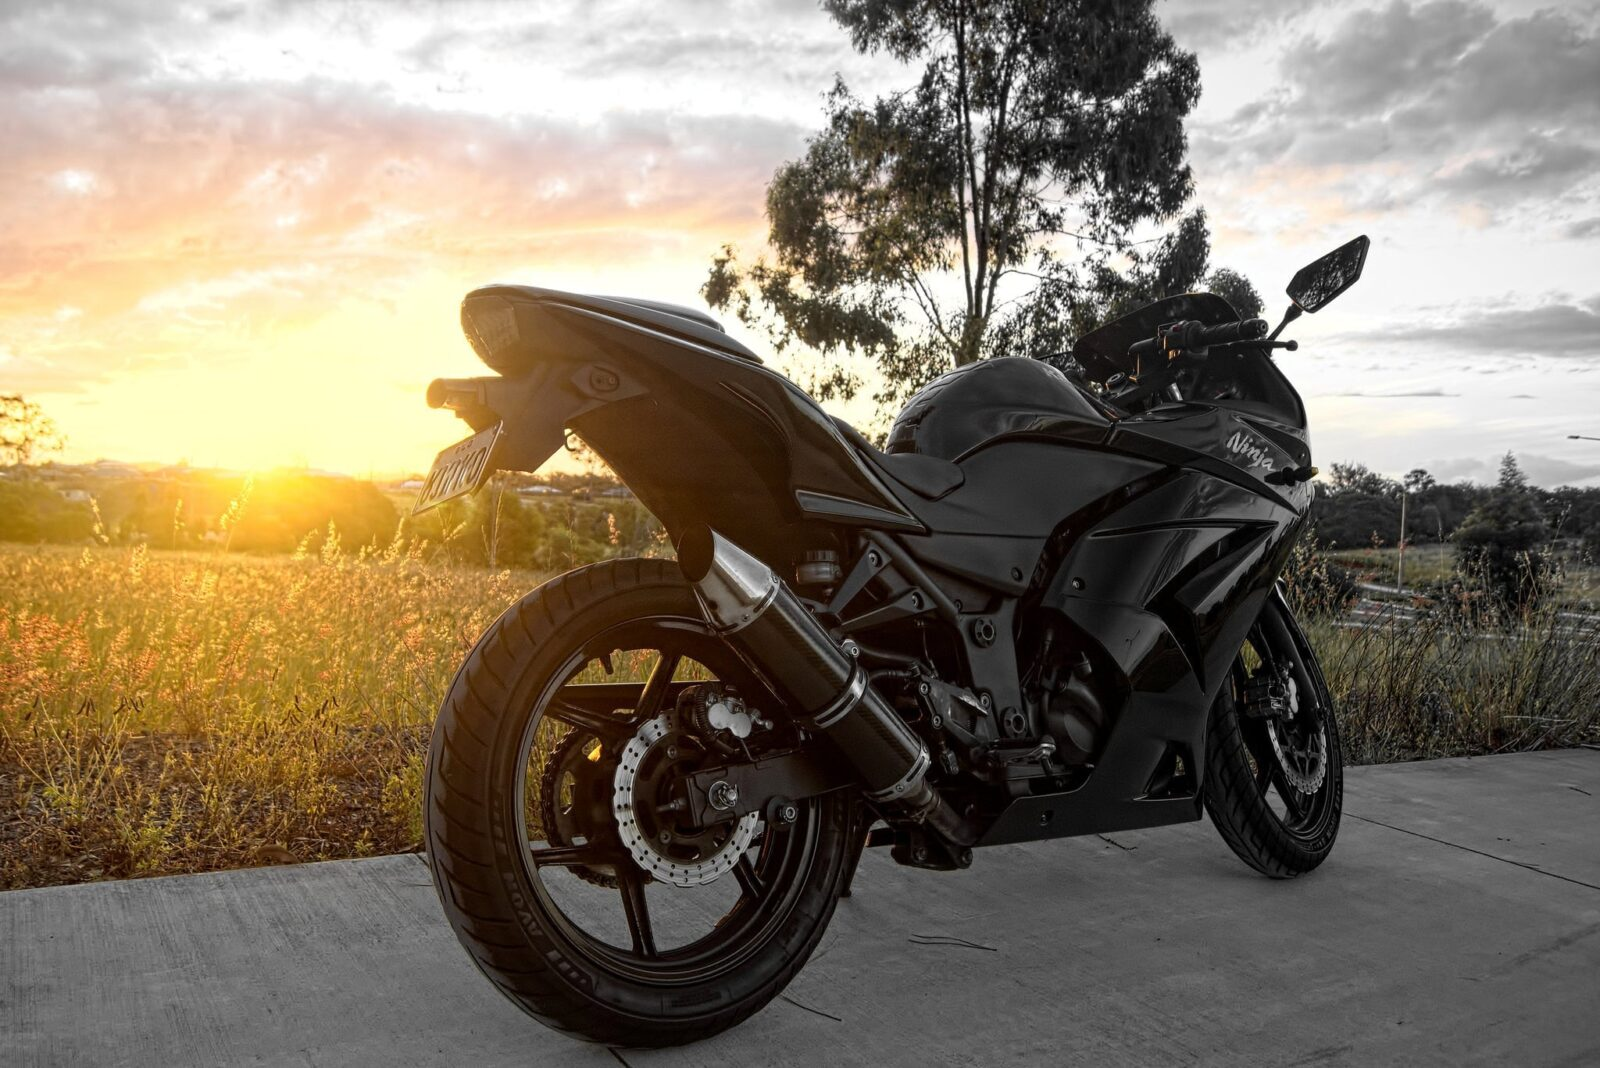 Black Kawasaki Ninja 250 HD Wallpapers